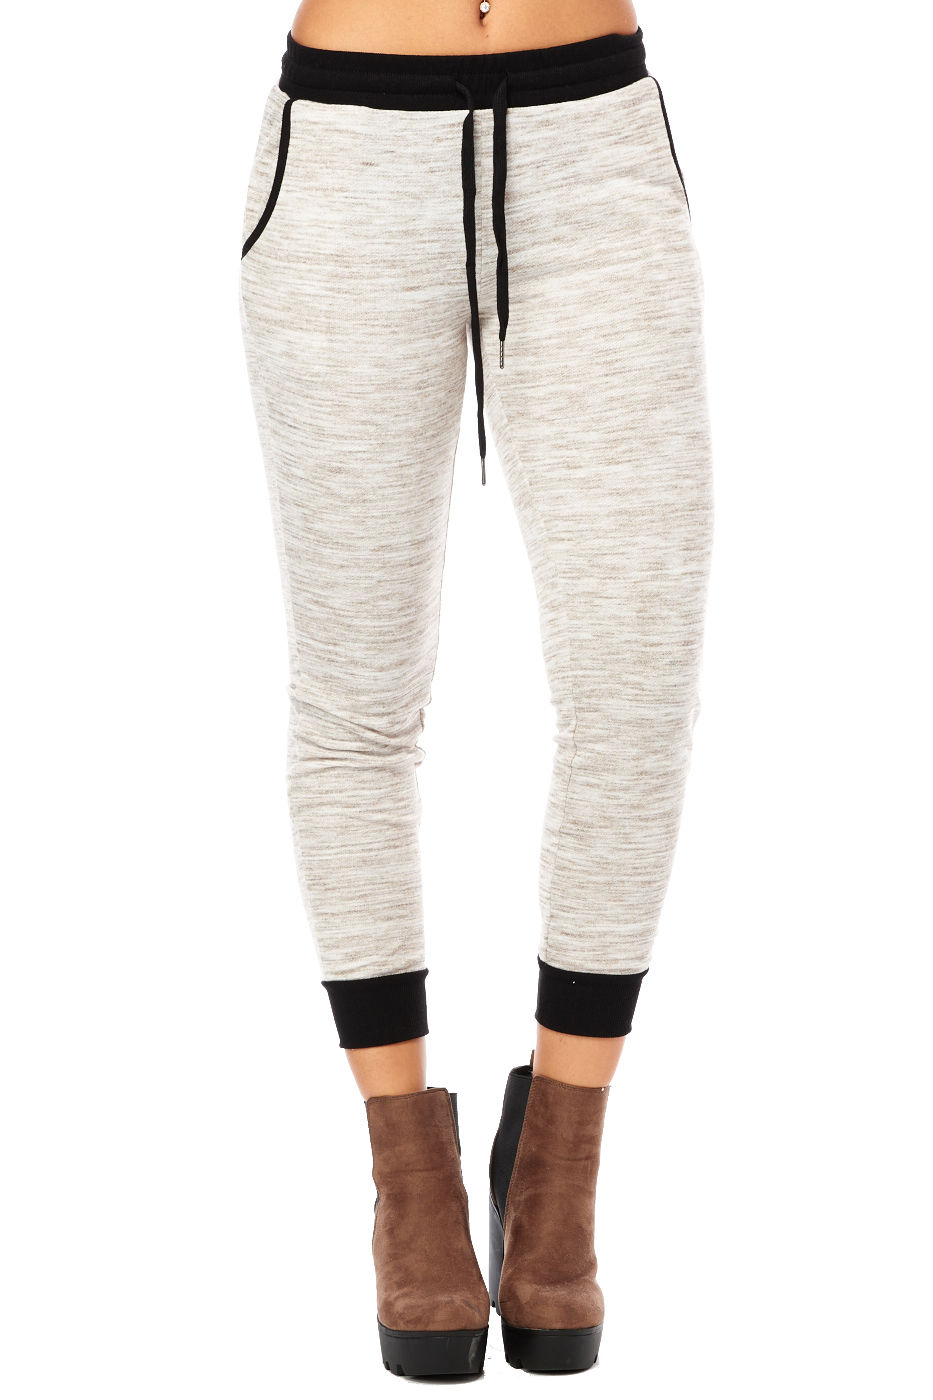 Womens Ladies Flat Heather Marled Active Running Joggers Pants by Iris Los Angeles